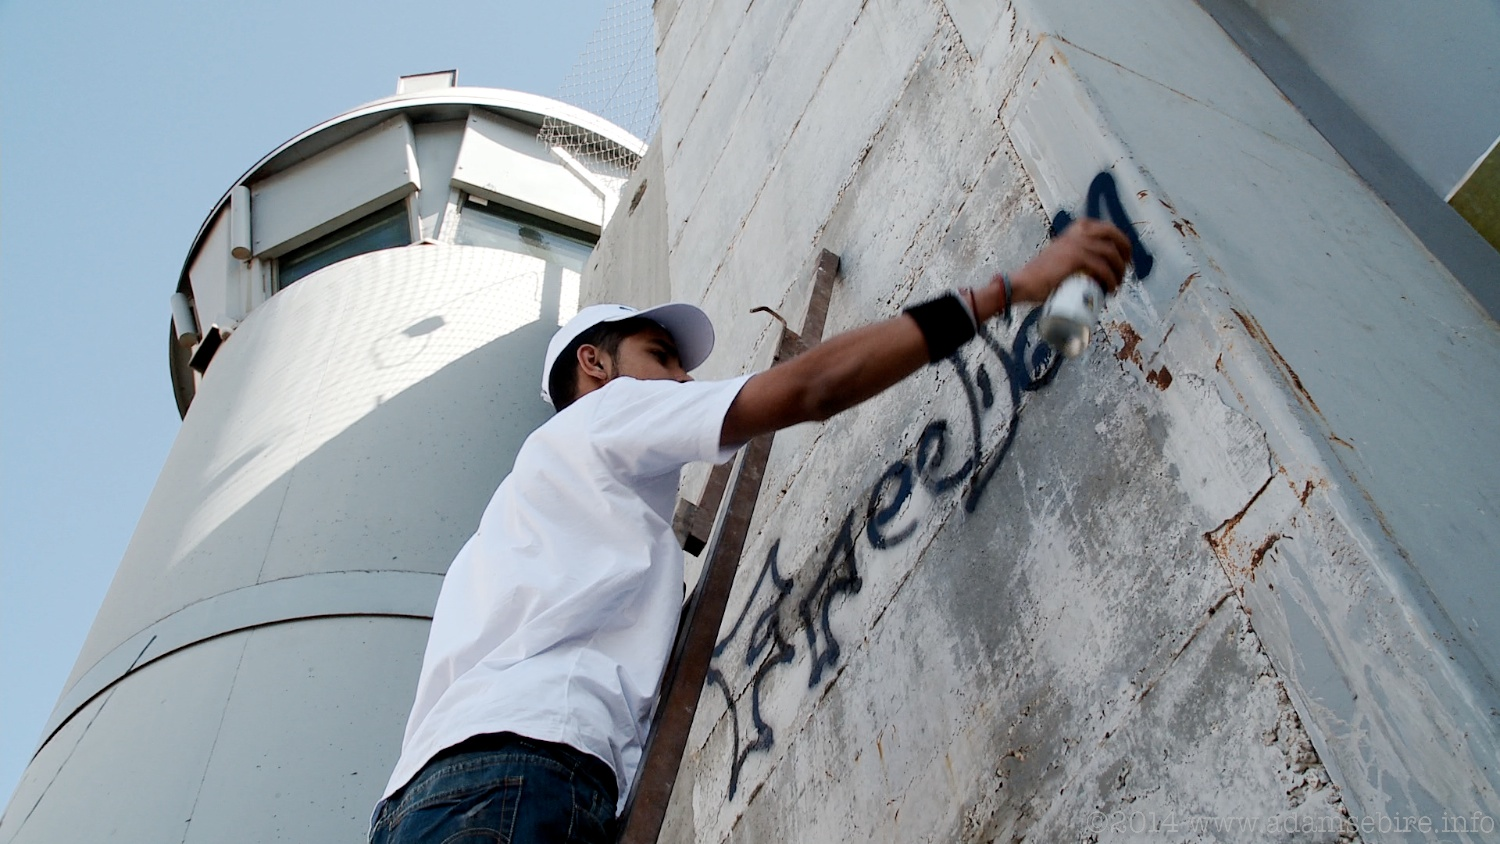 Painting graffiti on the Israeli separation barrier at Bethlehem